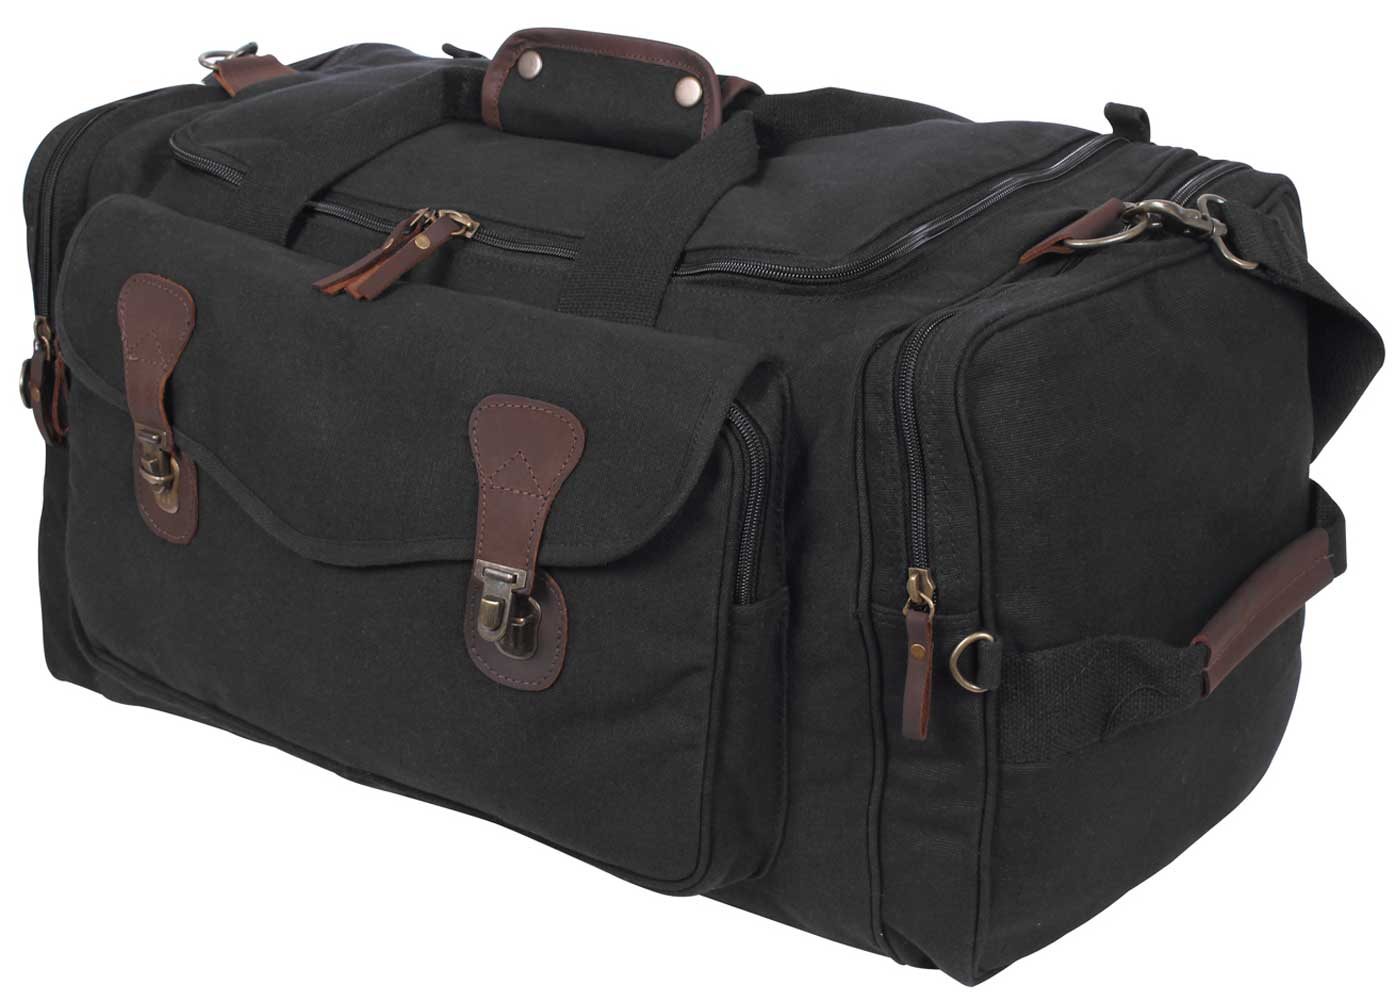 d0f0cff958 Rothco Canvas Leather Gym Duffle Bag